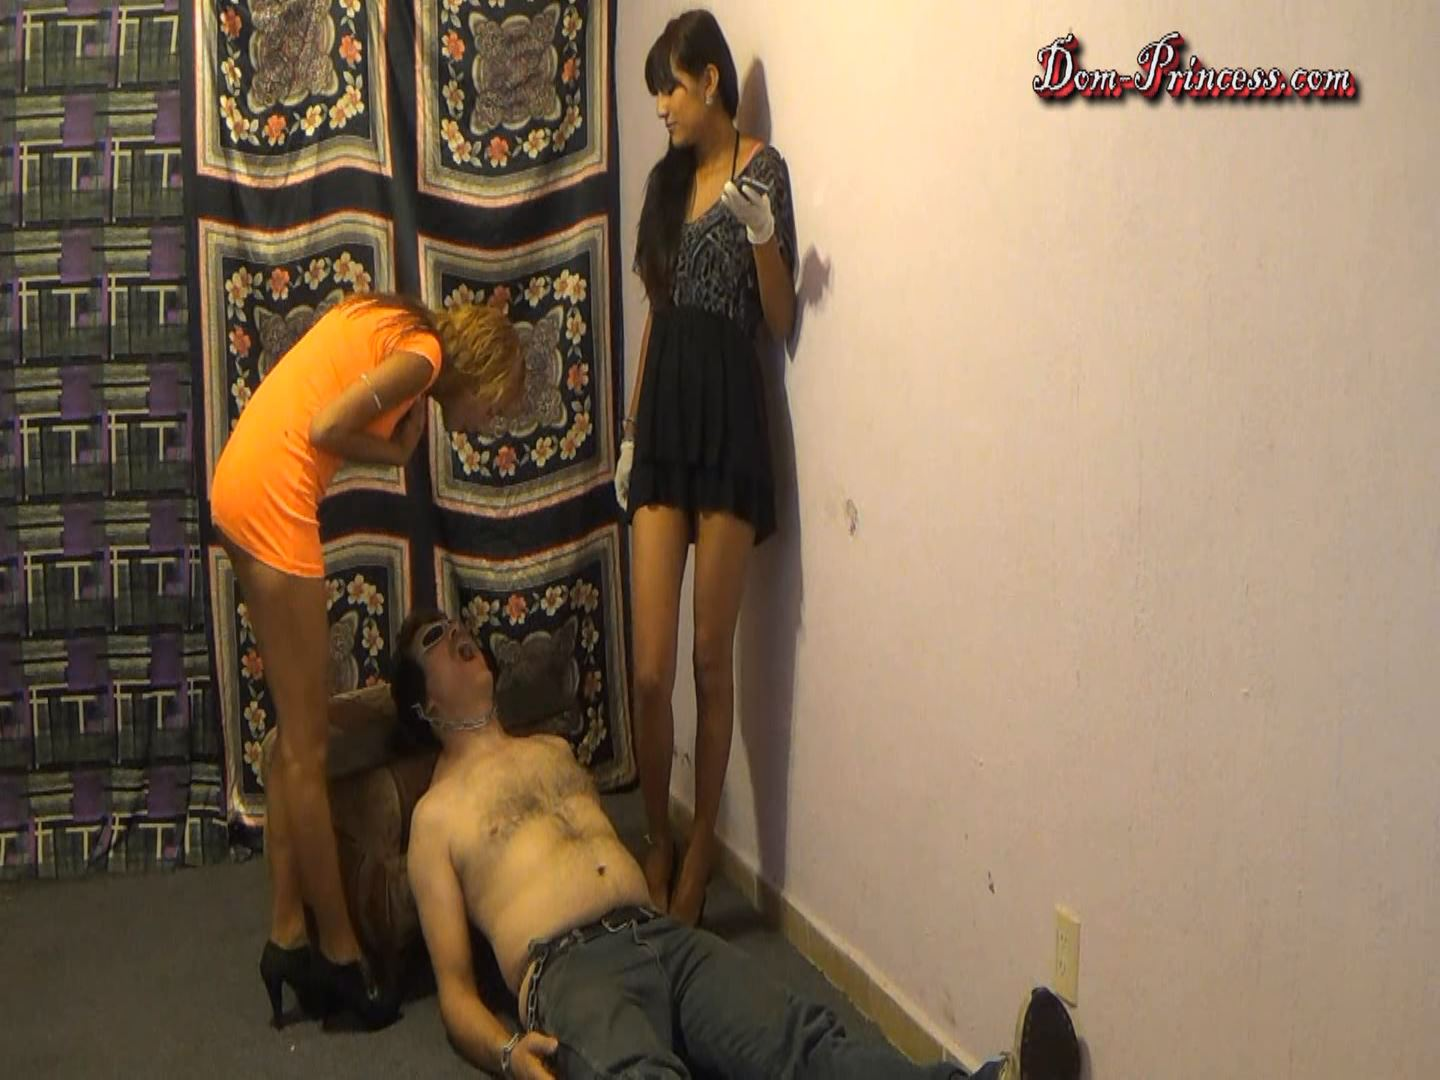 [SCAT-PRINCESS] Have a Seat here for Toilets Part 1 [FULL HD][1080p][WMV]